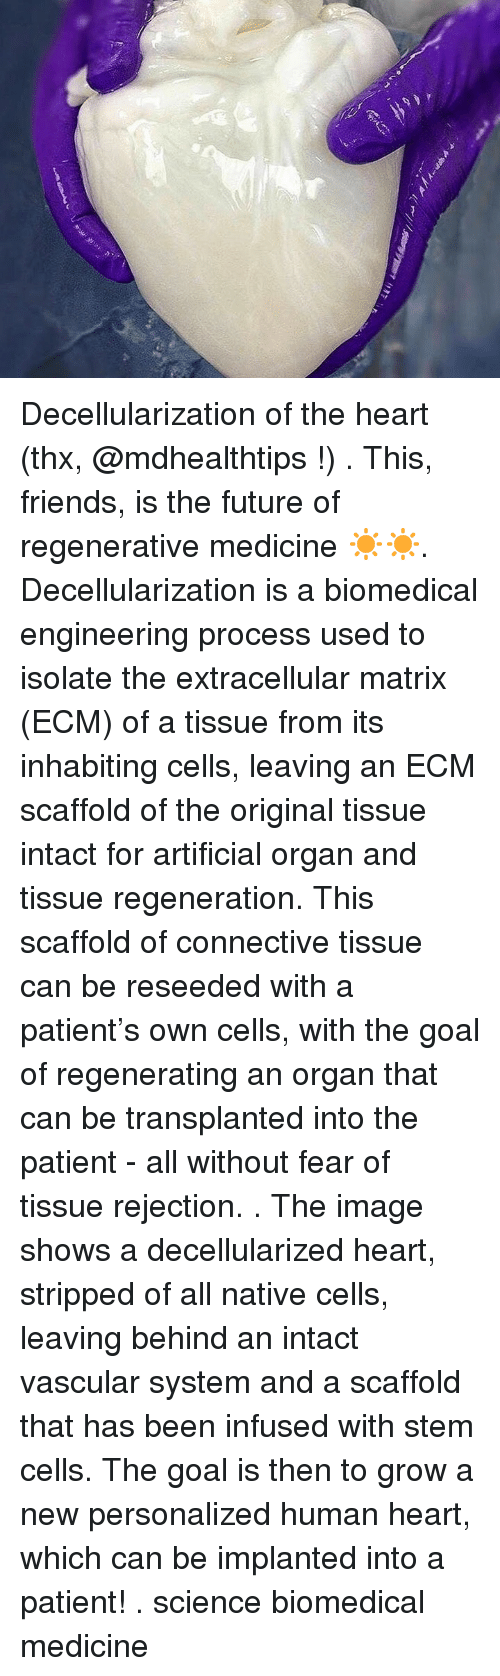 Friends, Future, and Memes: Decellularization of the heart (thx, @mdhealthtips !) . This, friends, is the future of regenerative medicine ☀️☀️. Decellularization is a biomedical engineering process used to isolate the extracellular matrix (ECM) of a tissue from its inhabiting cells, leaving an ECM scaffold of the original tissue intact for artificial organ and tissue regeneration. This scaffold of connective tissue can be reseeded with a patient's own cells, with the goal of regenerating an organ that can be transplanted into the patient - all without fear of tissue rejection. . The image shows a decellularized heart, stripped of all native cells, leaving behind an intact vascular system and a scaffold that has been infused with stem cells. The goal is then to grow a new personalized human heart, which can be implanted into a patient! . science biomedical medicine